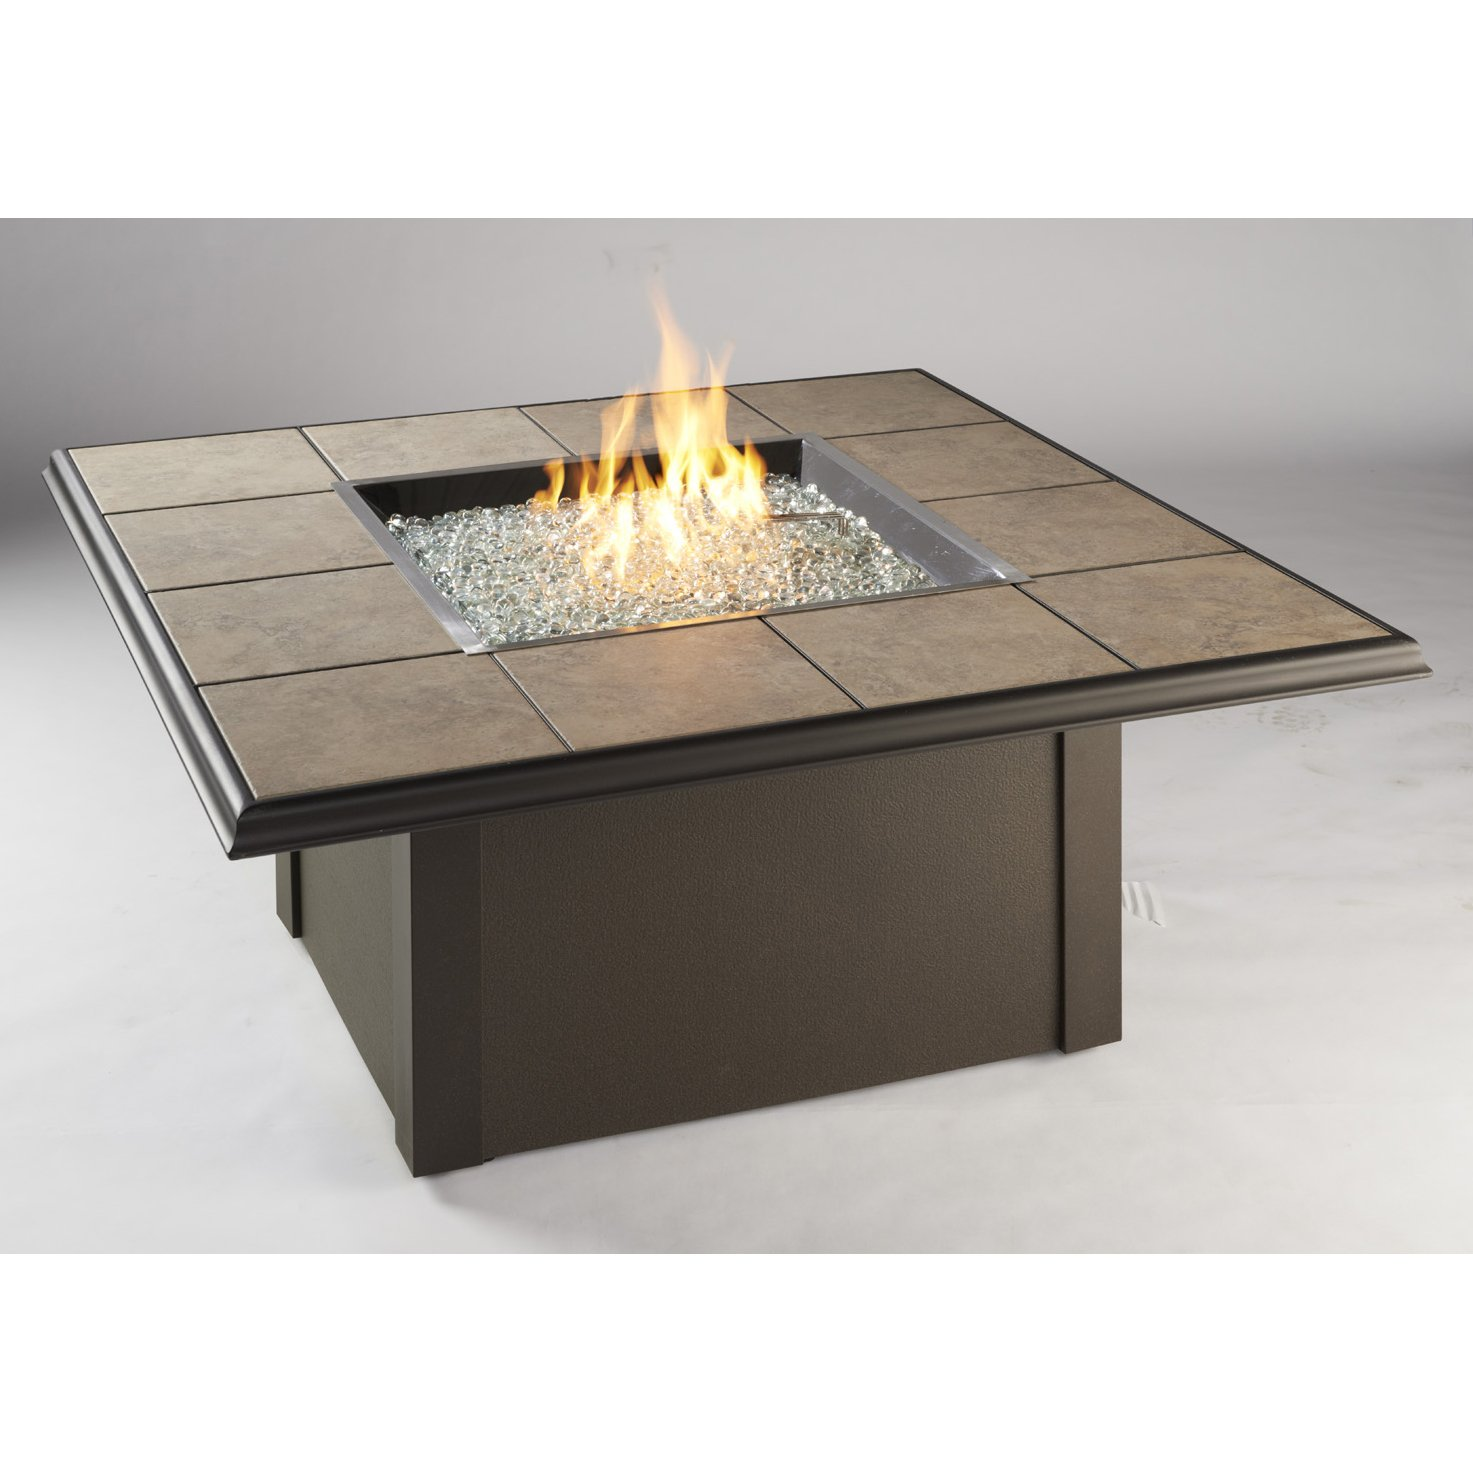 71Q76NW09vL. SL1473  Top Result 50 Awesome Propane Fire Pit Burner Gallery 2018 Hzt6